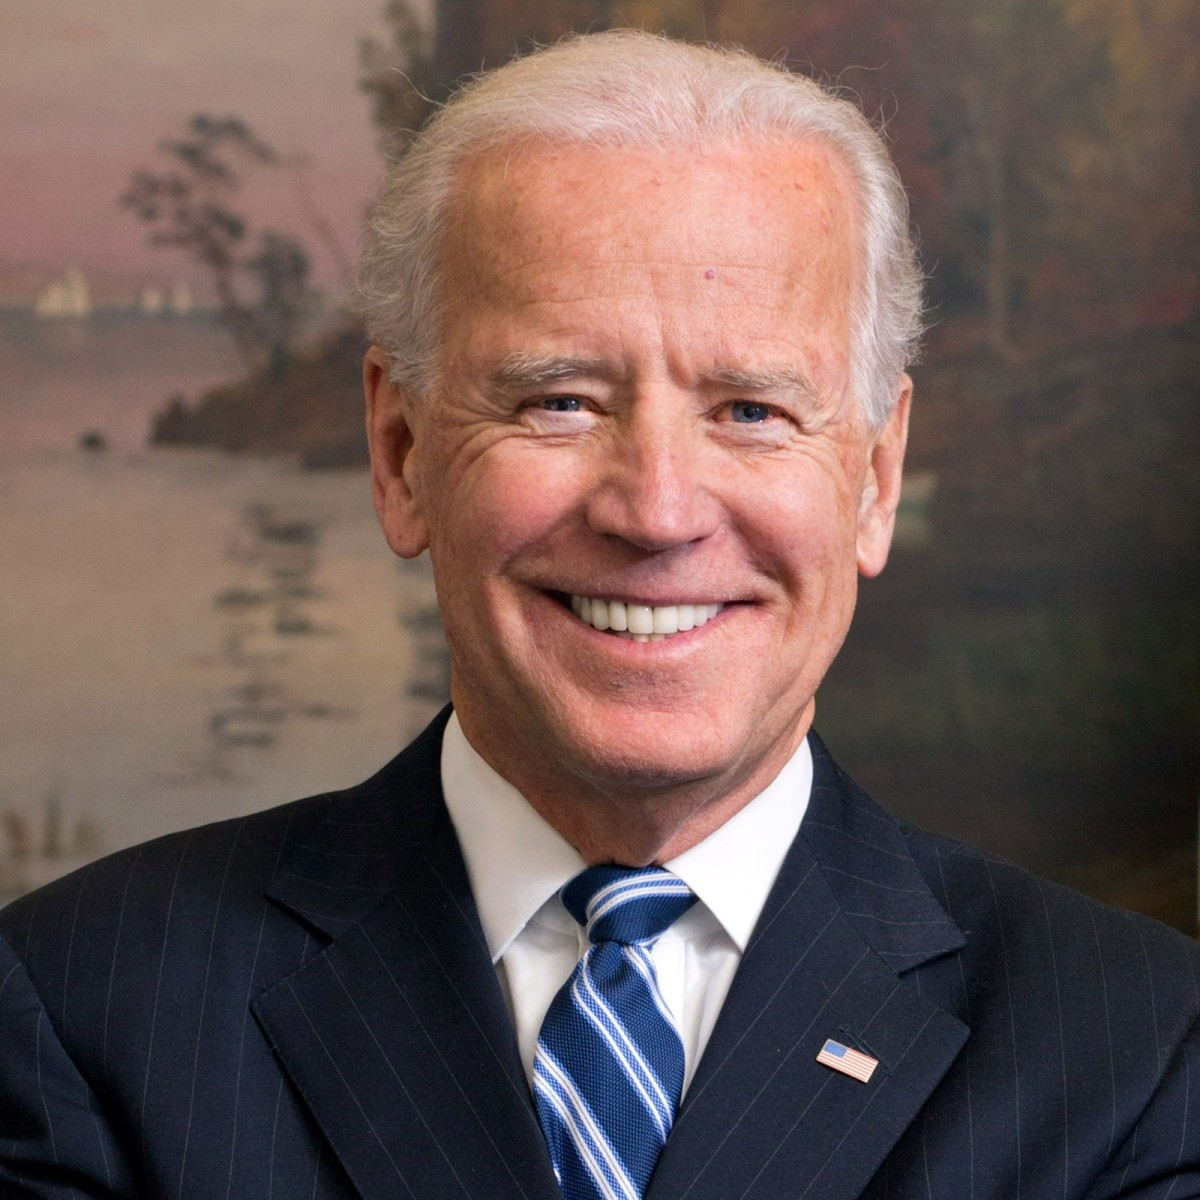 Image result for joe biden pictures